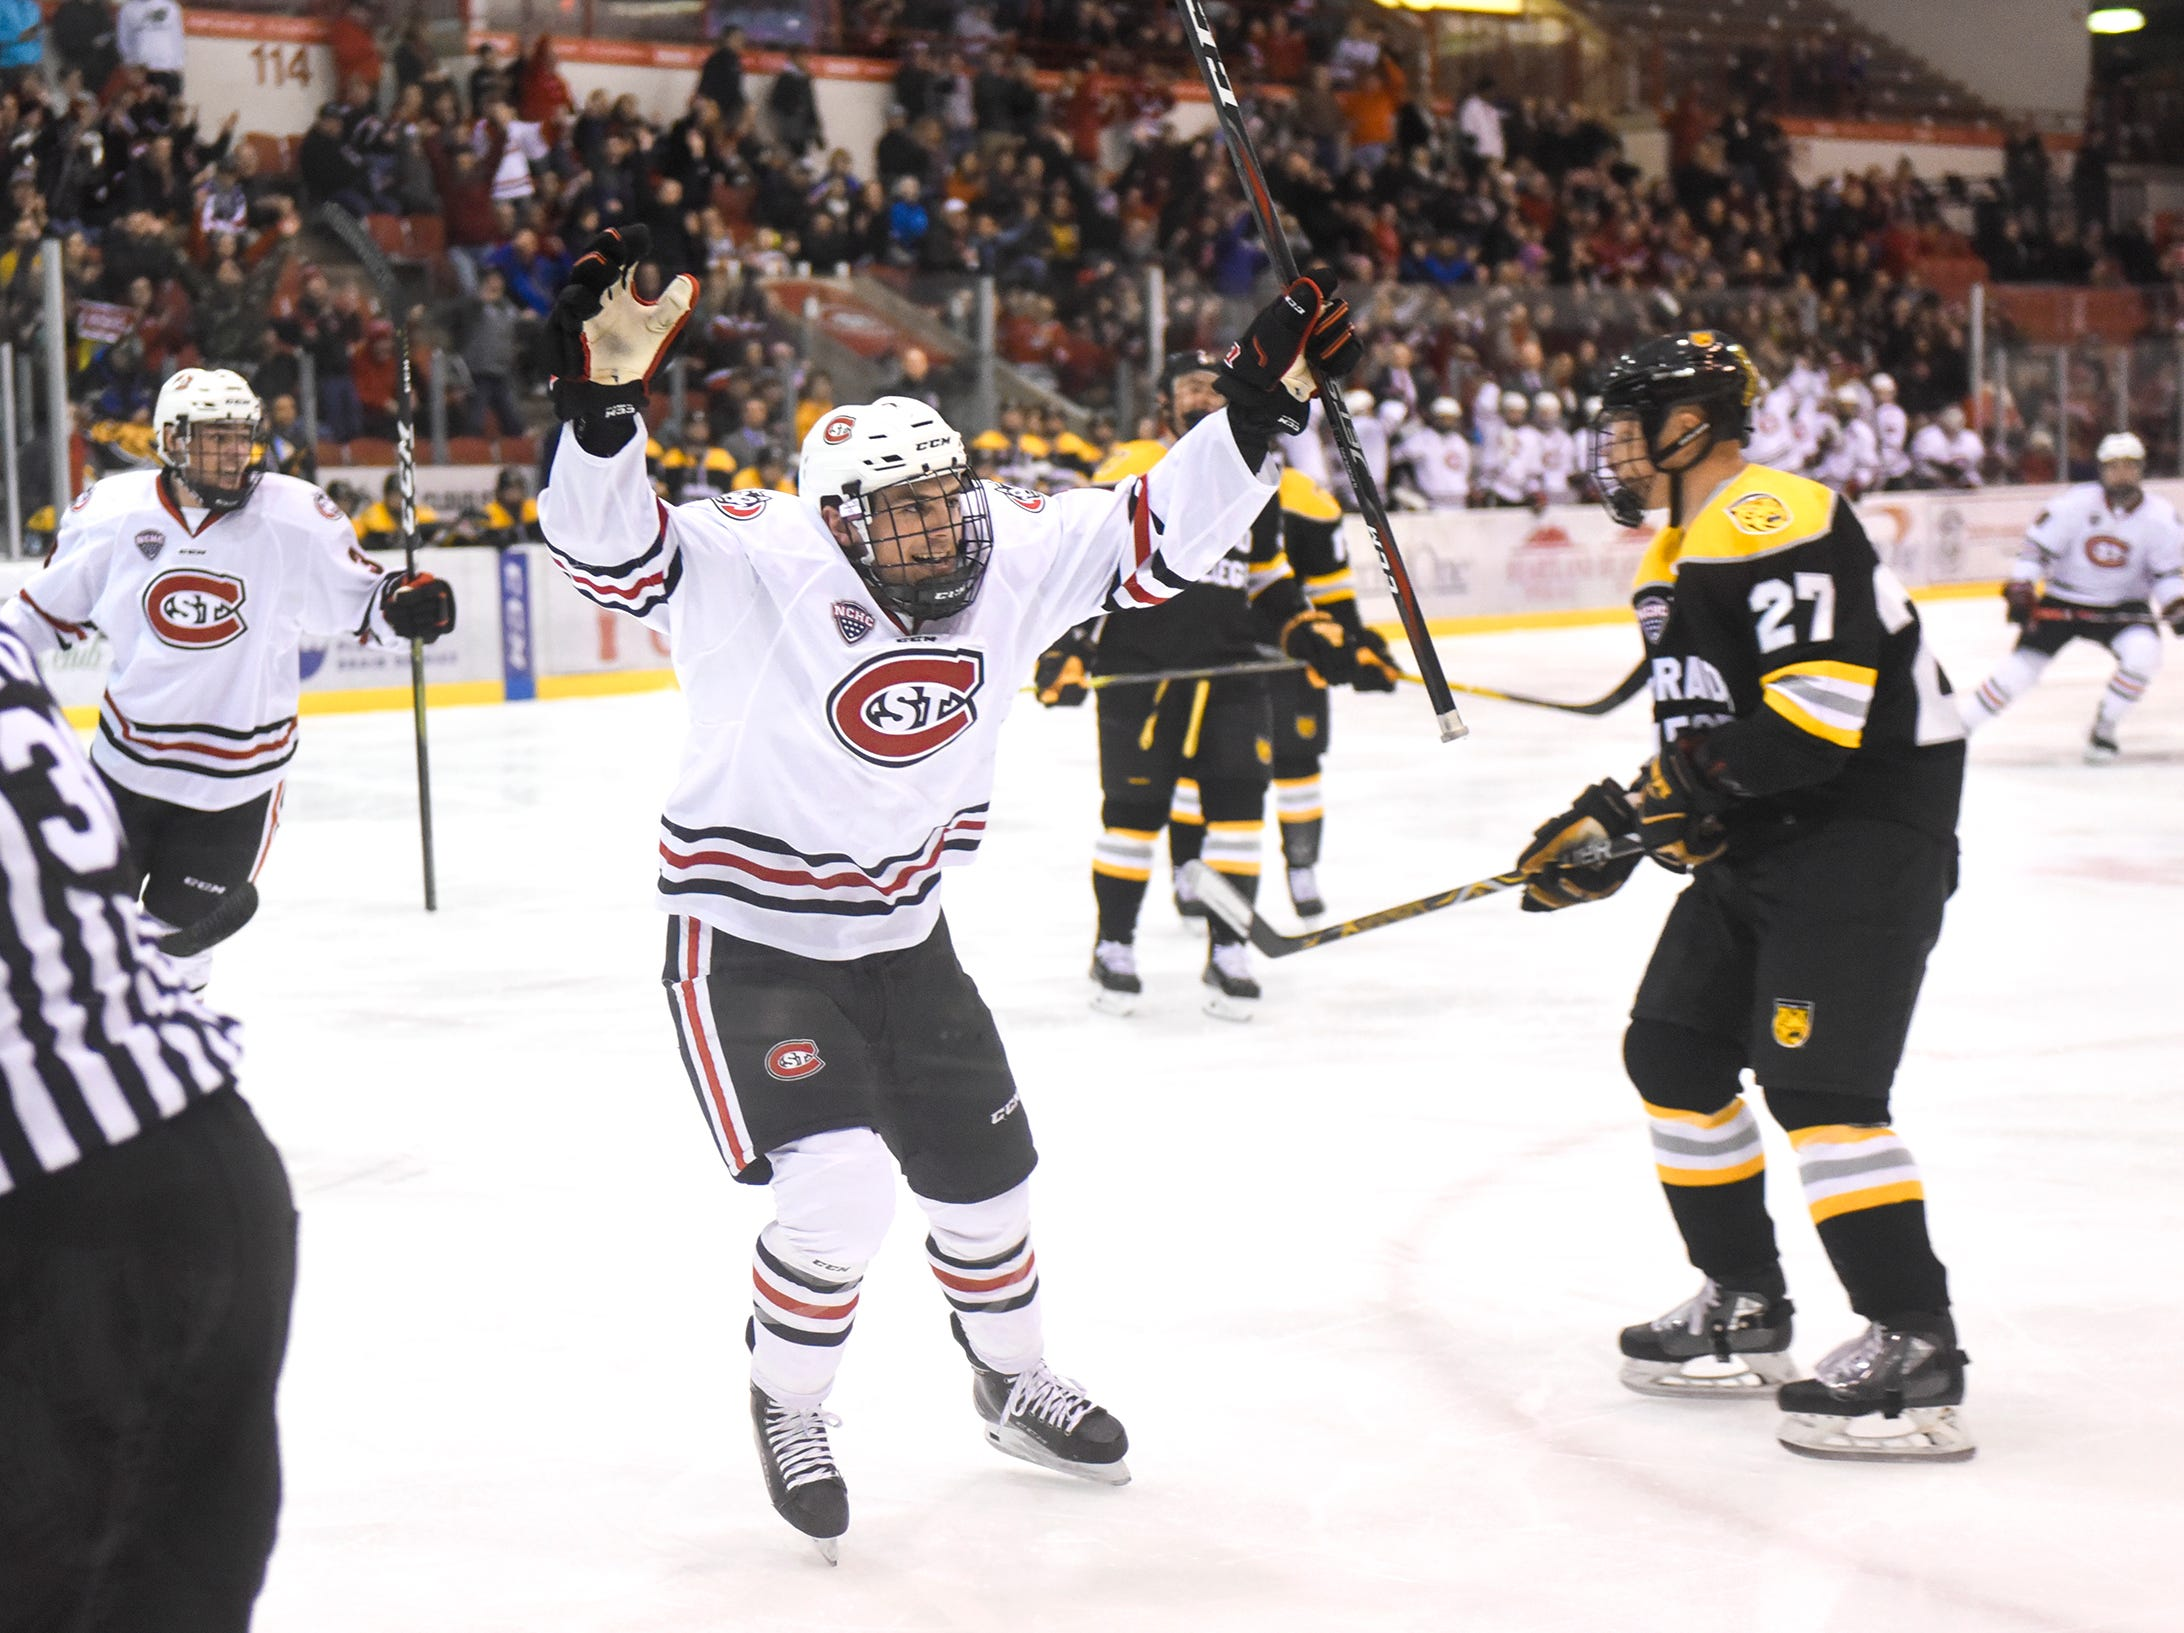 St. Cloud State's Nick Poehling celebrates a goal during the first period of the Friday, Feb. 8, game against Colorado College at the Herb Brooks National Hockey Center in St. Cloud.